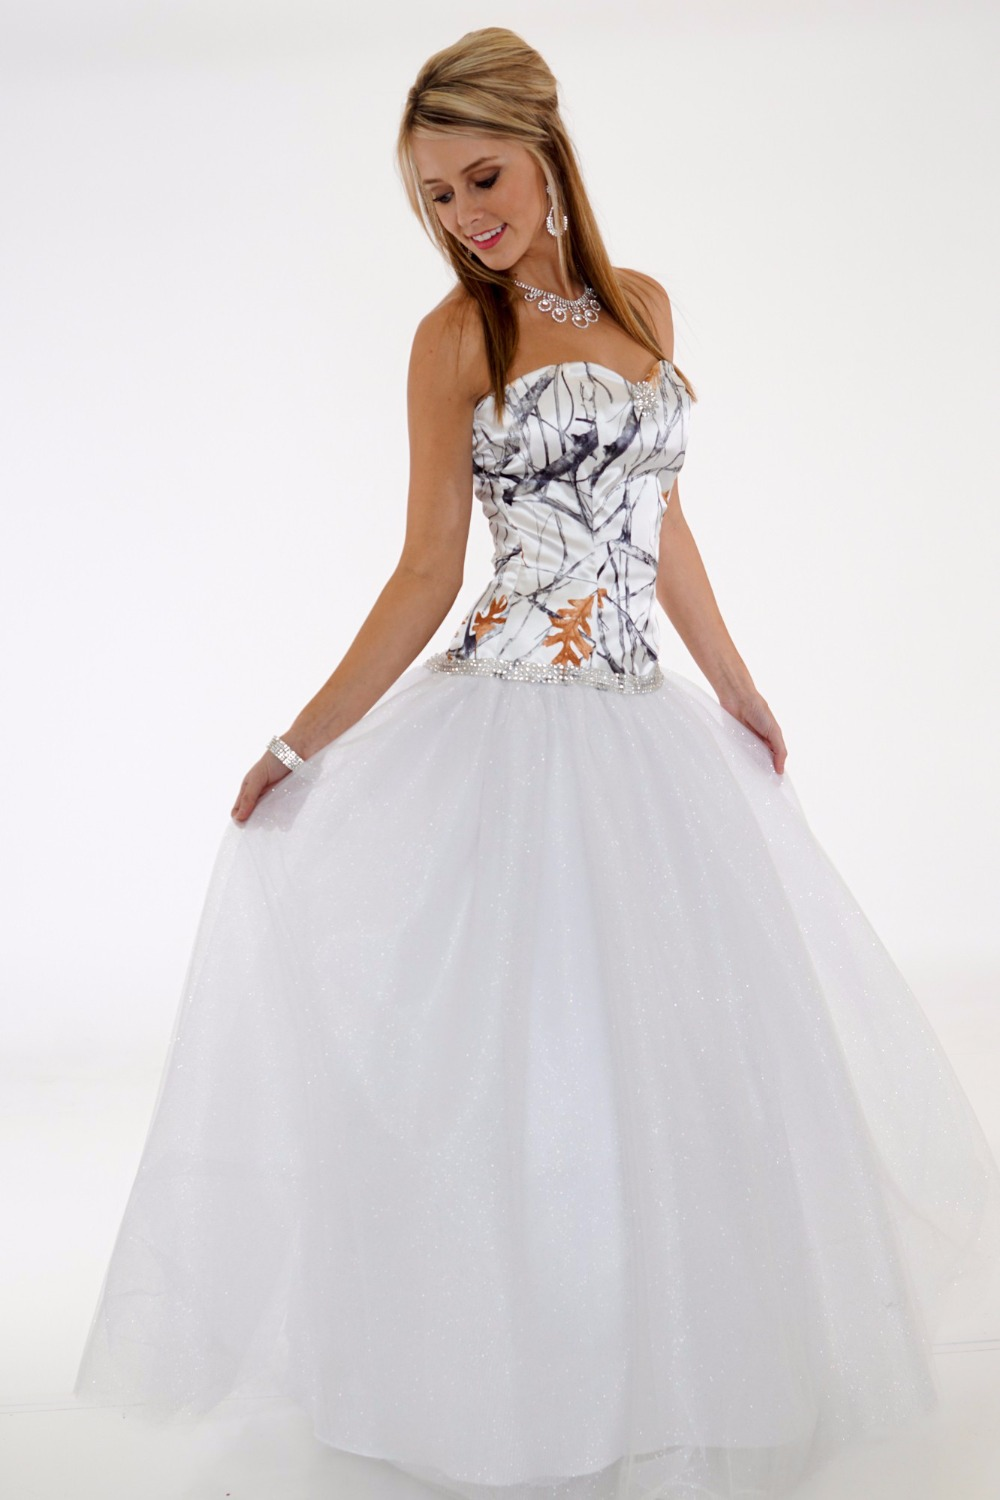 Wedding Dresses In White And Camo 92